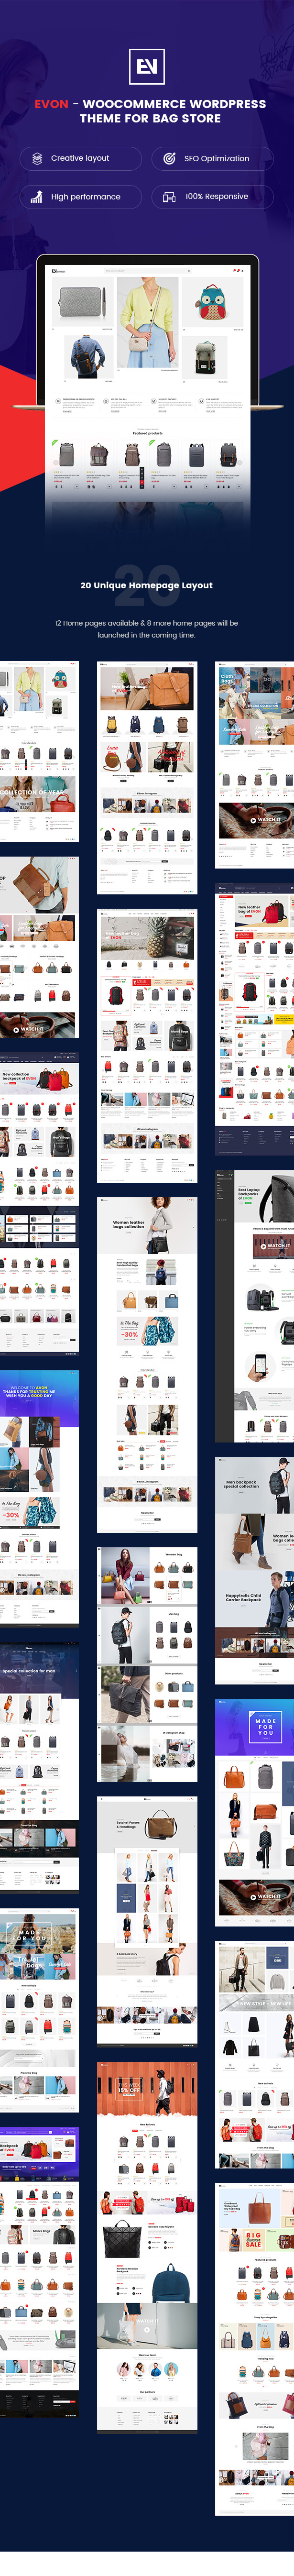 Evon - Bag Store WooCommerce WordPress Theme - 1